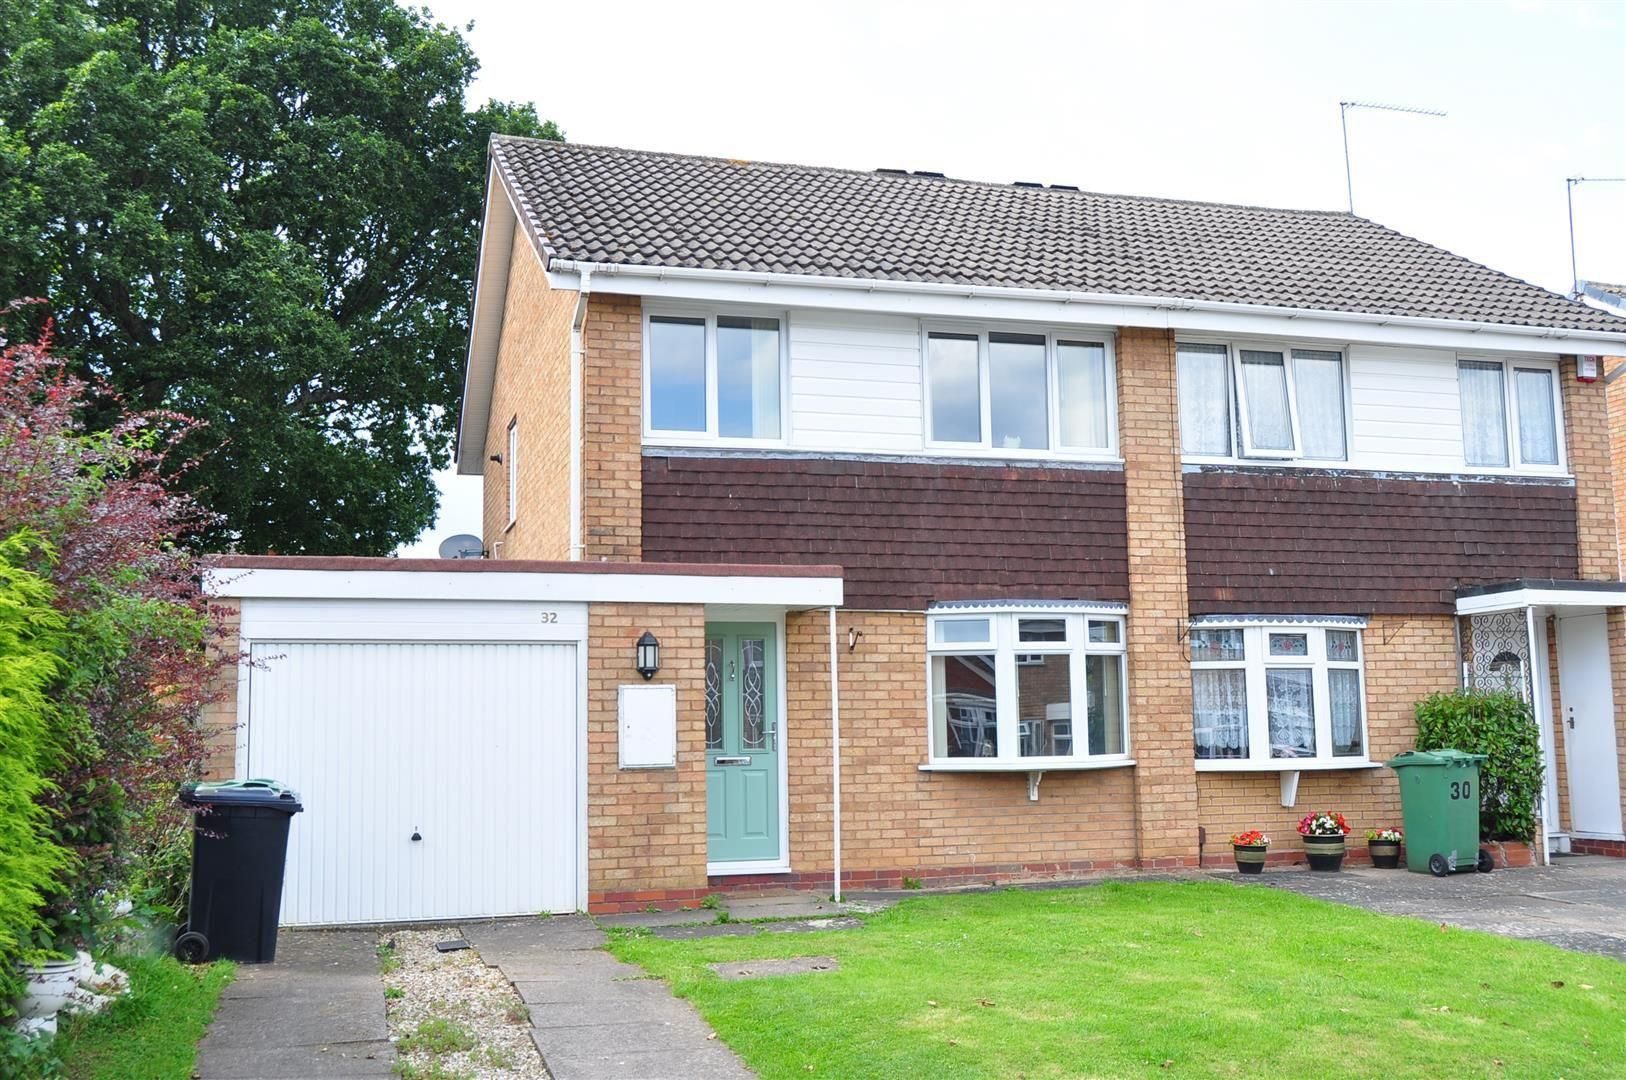 3 bed semi-detached for sale 15